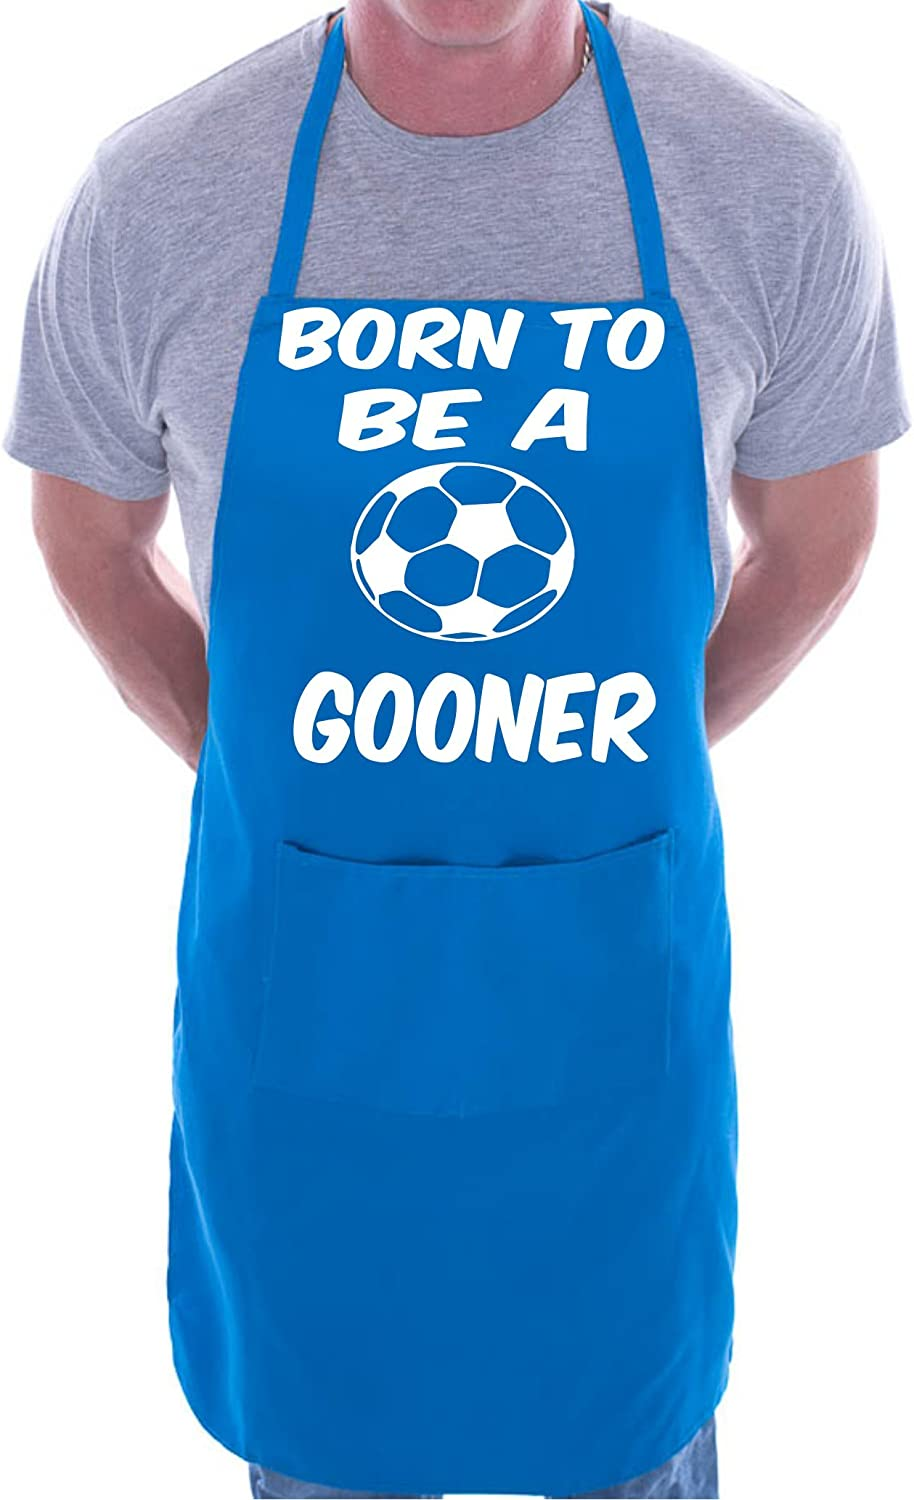 Born To Be A Gooner Arsenal Cooking Novelty Apron